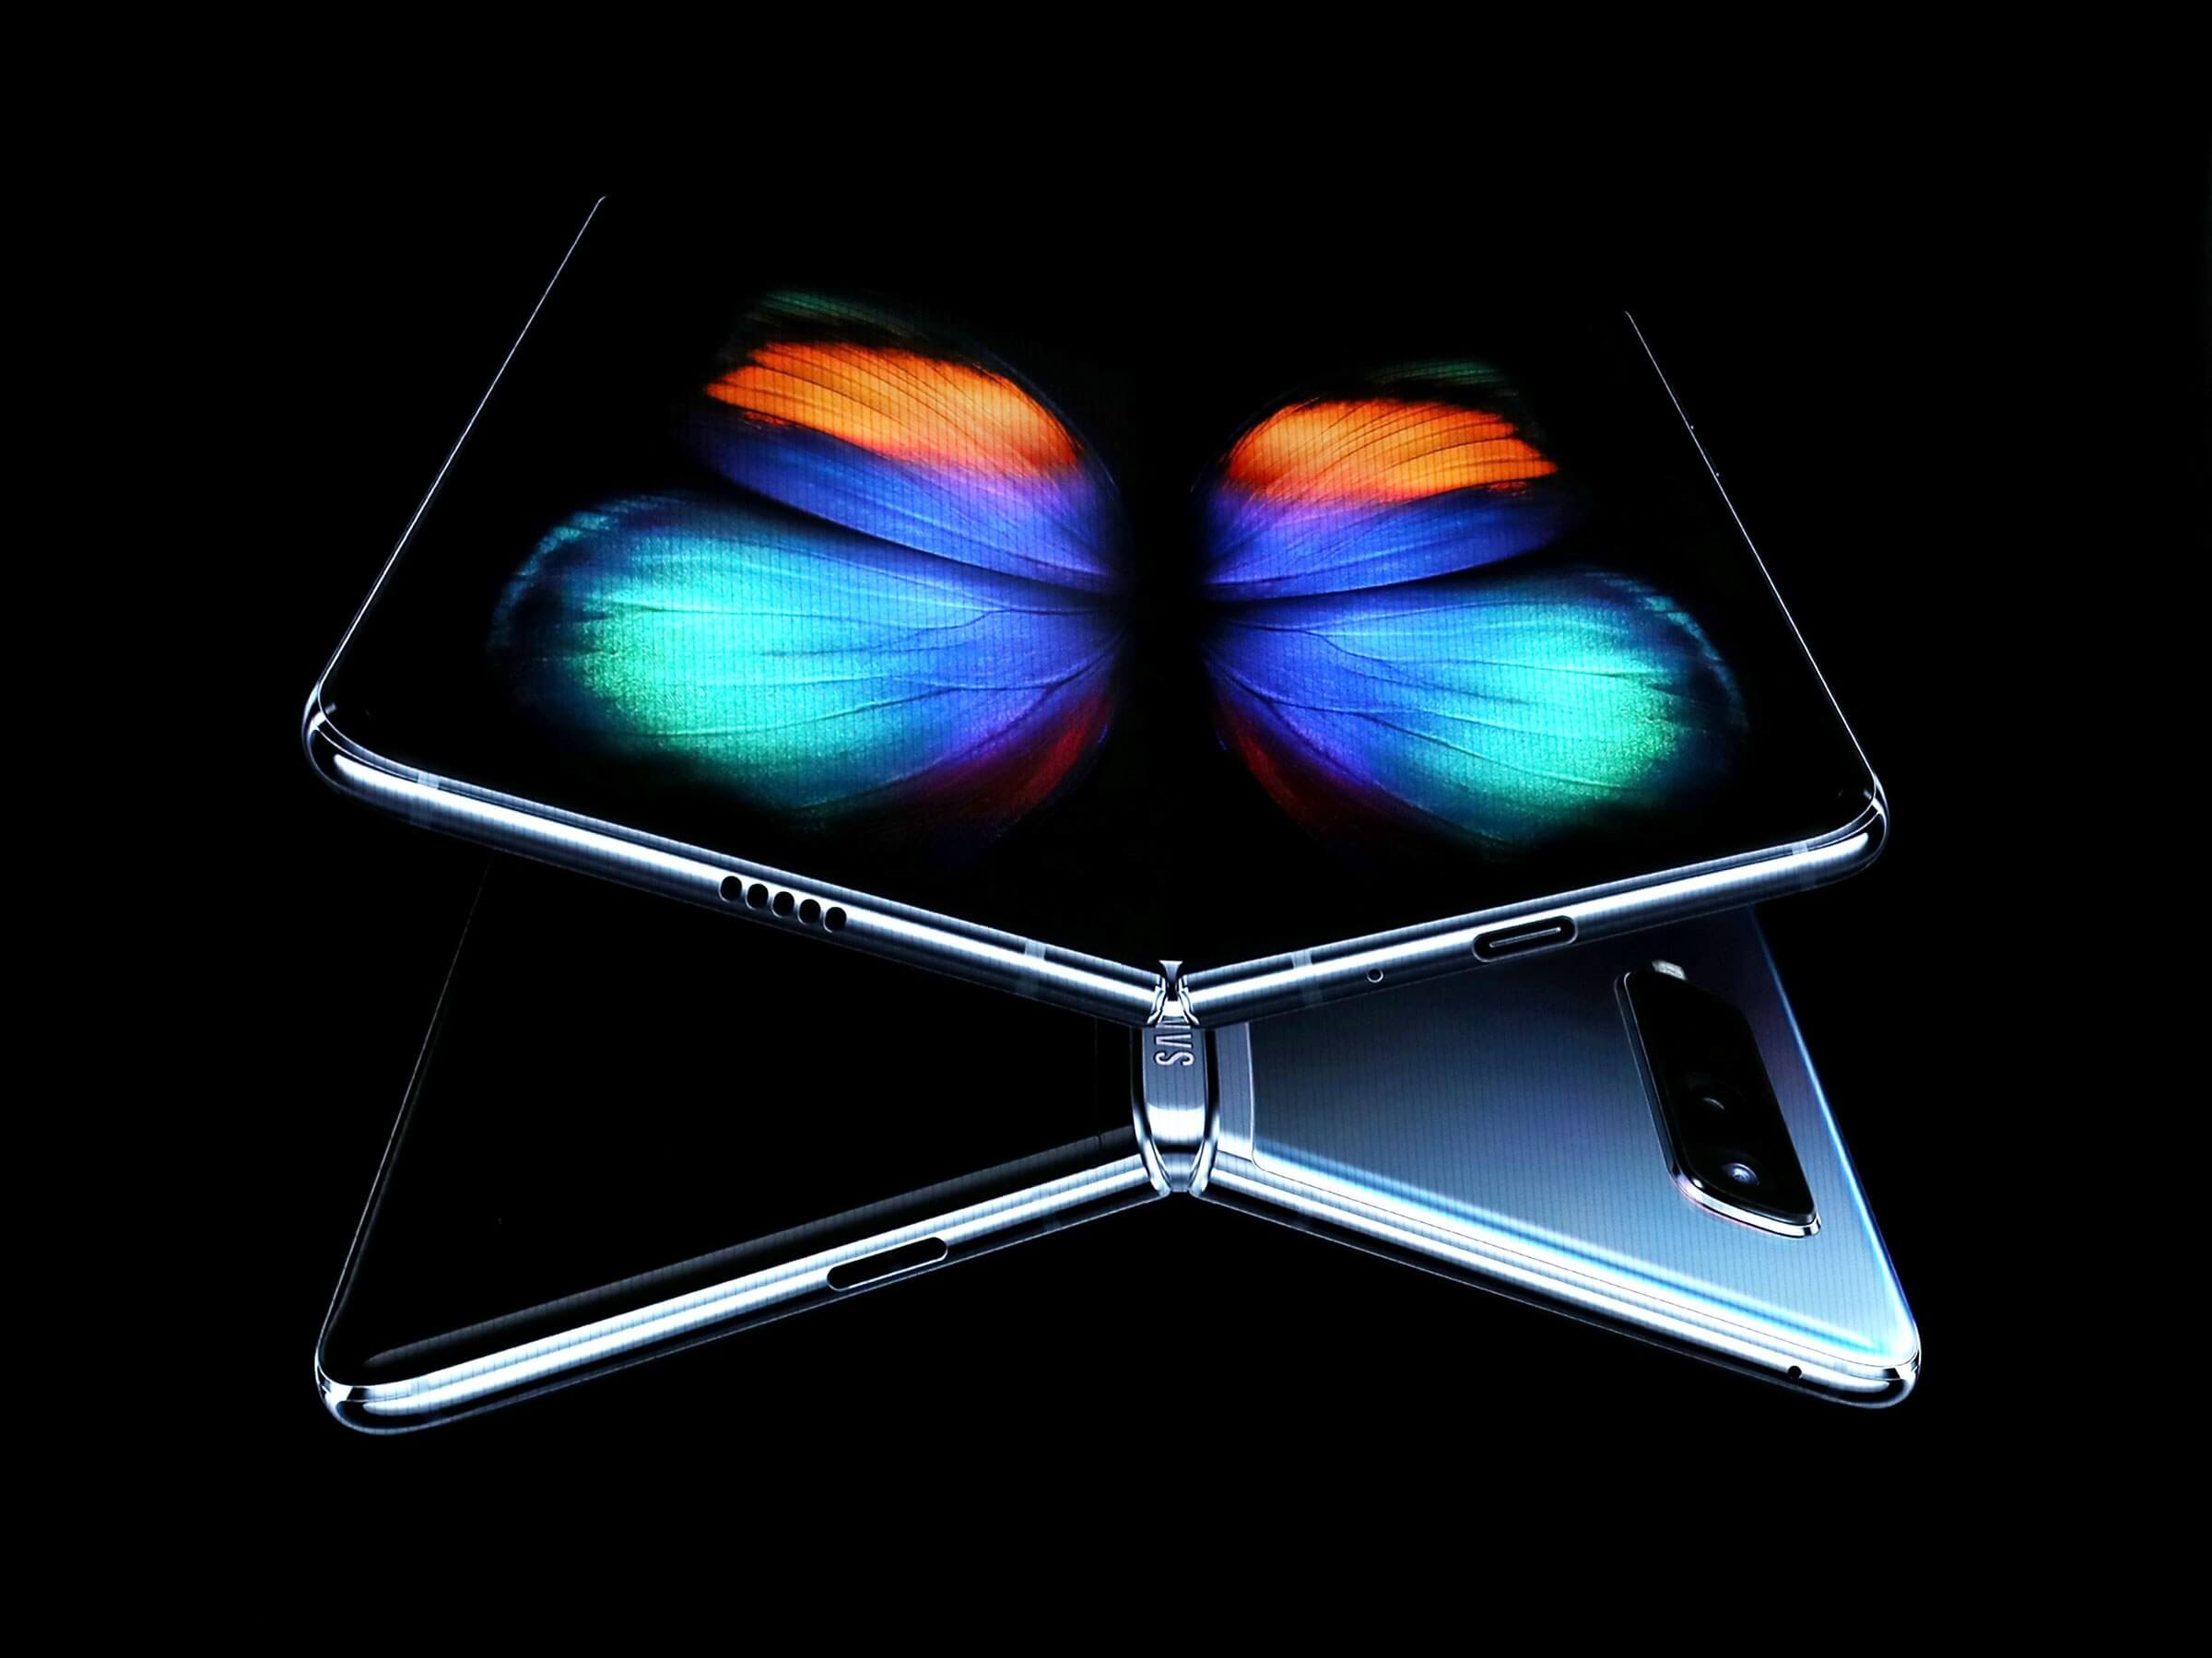 Samsung confirms Galaxy Fold will relaunch on September 6 in South Korea, hits US in coming weeks